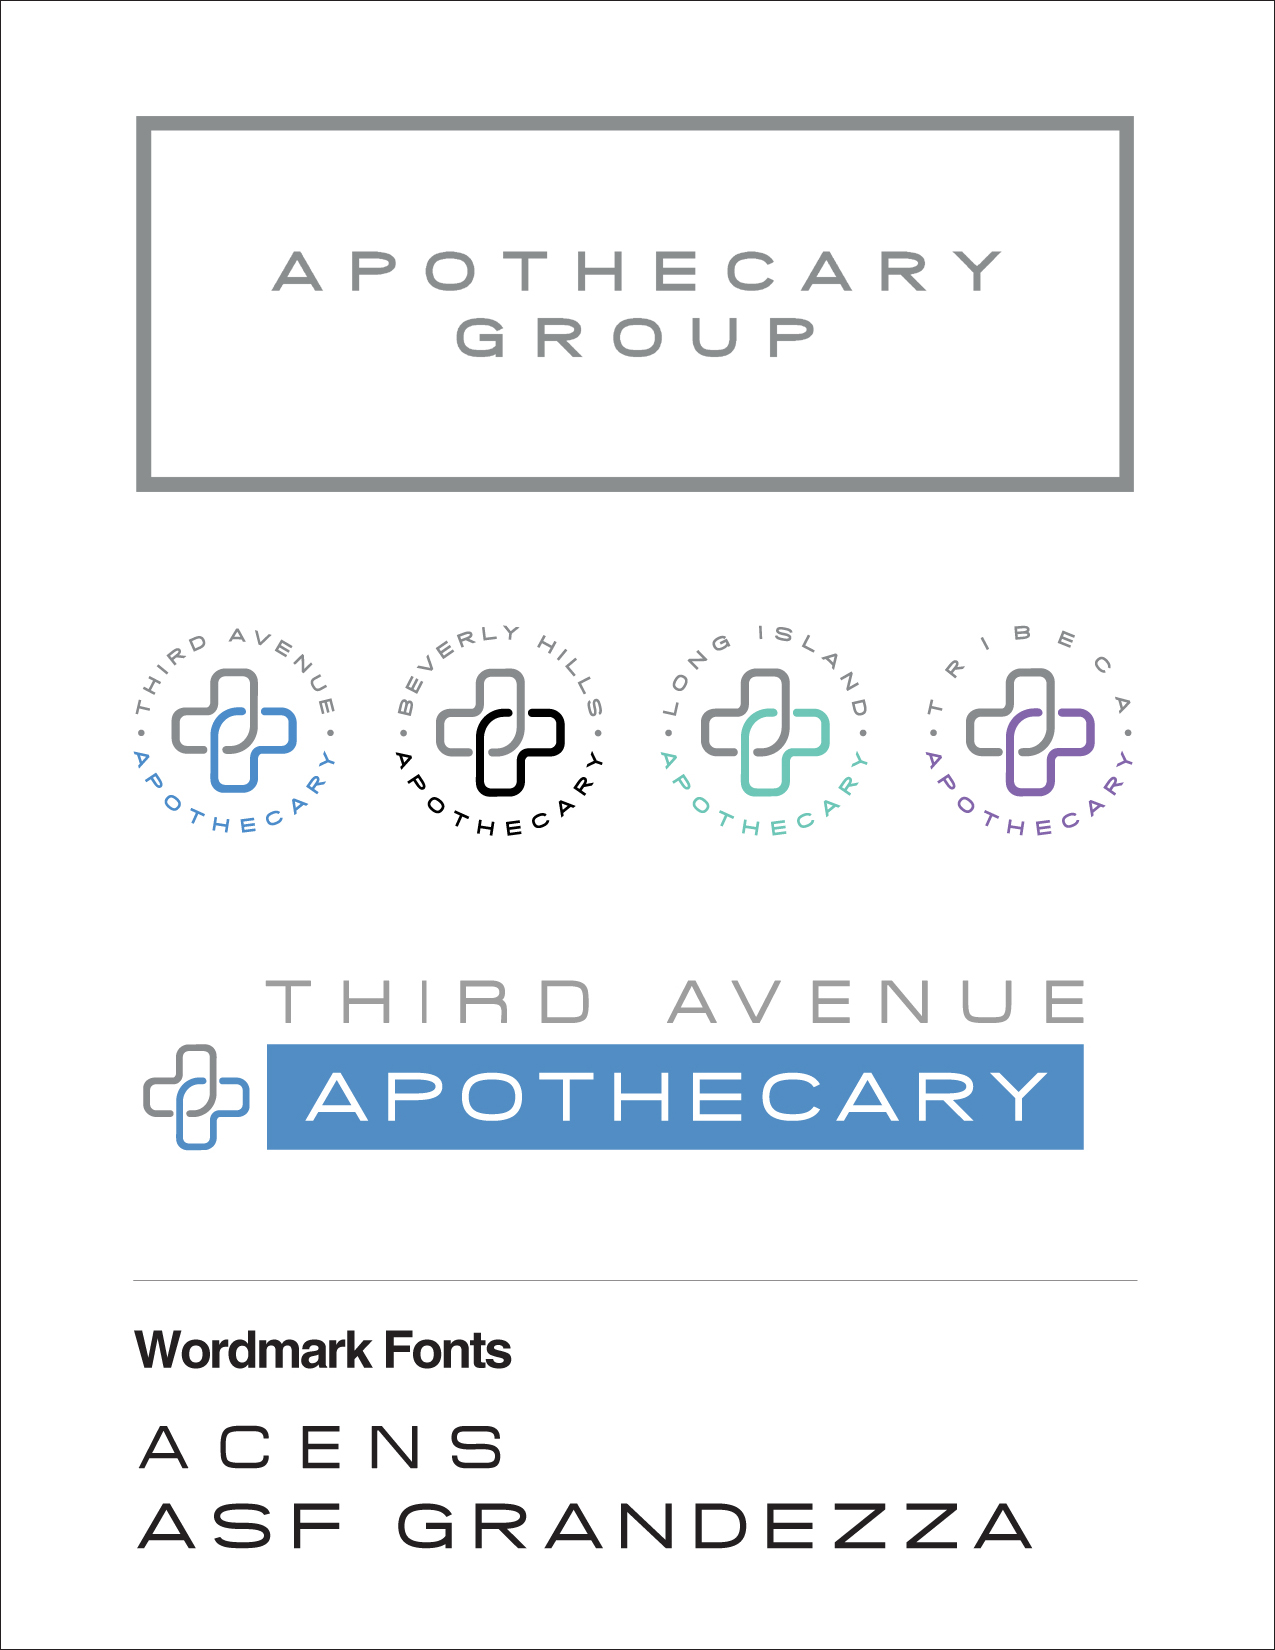 APOTHECARY-GUIDELINES-P-2-1 copy